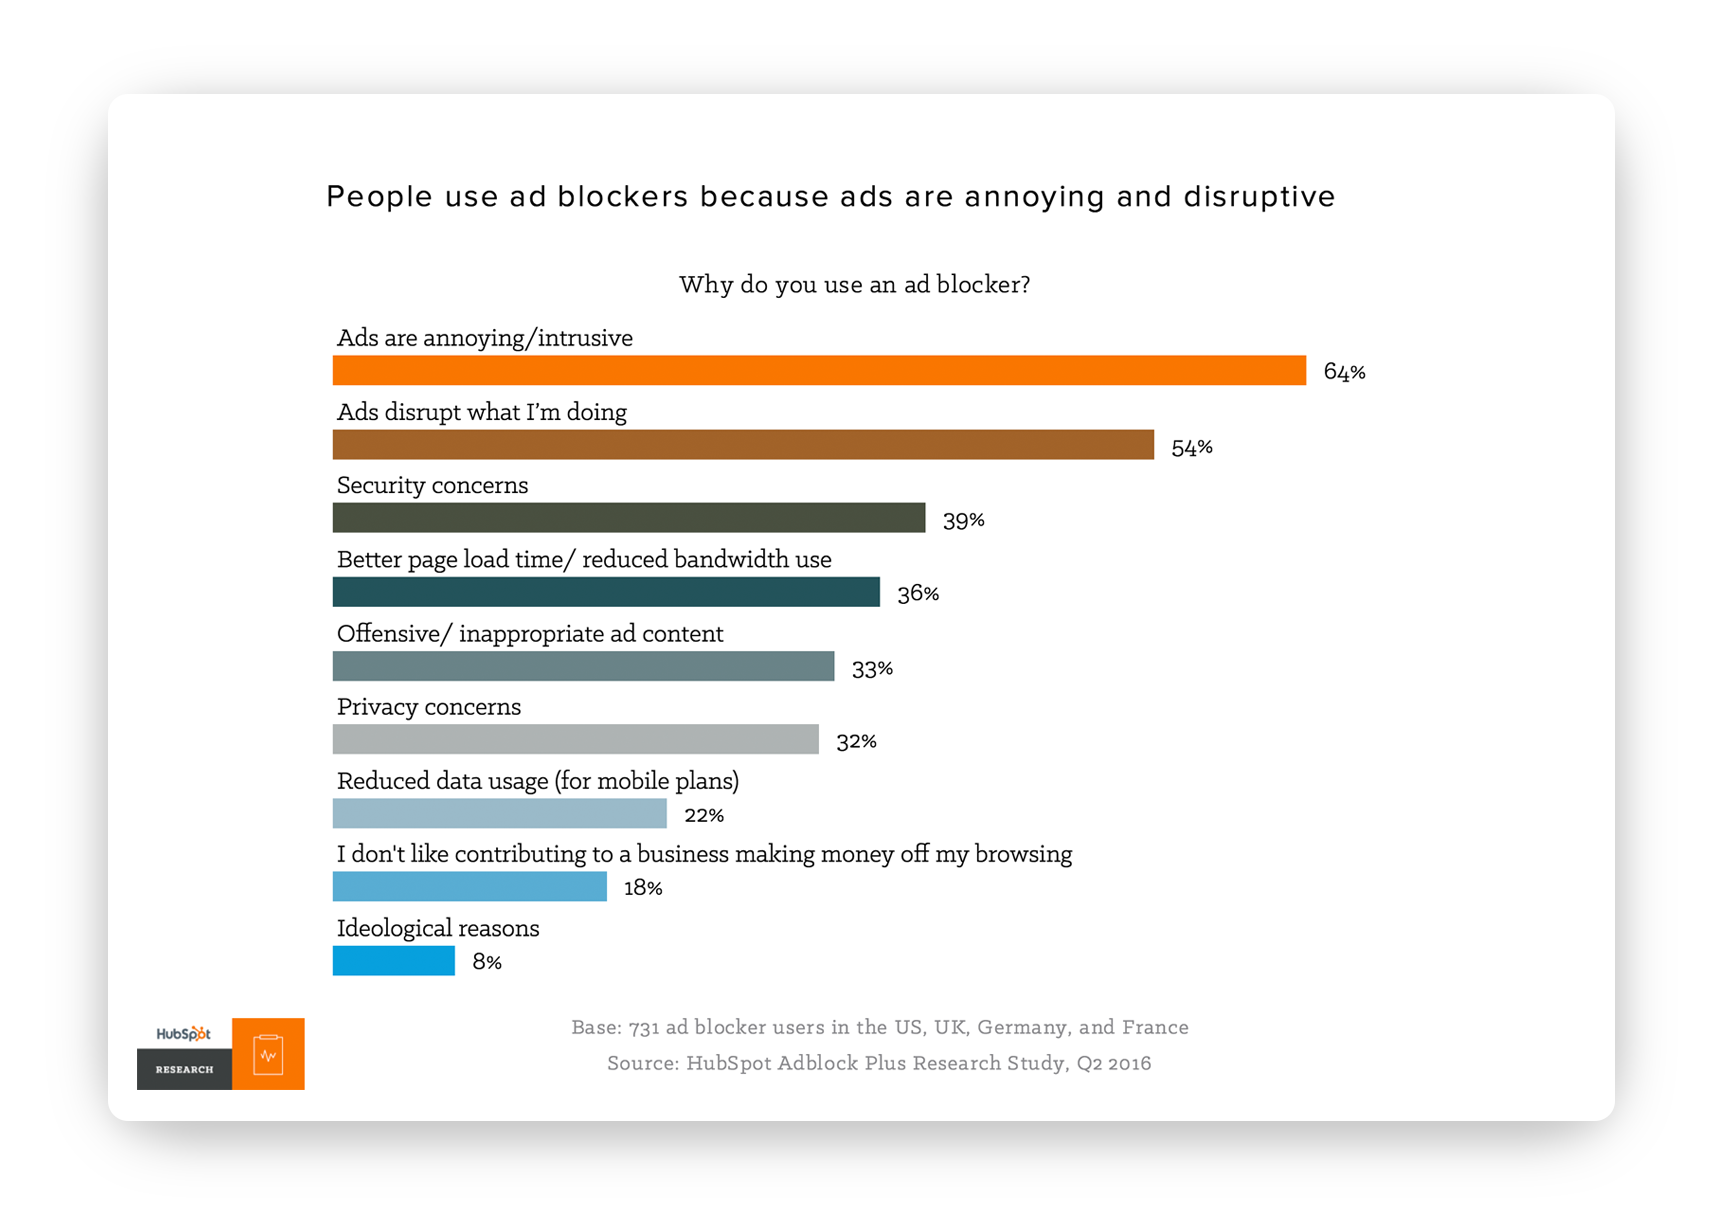 people-use-ad-blockers-because-ads-are-anoying-and-disruptive-hubspot